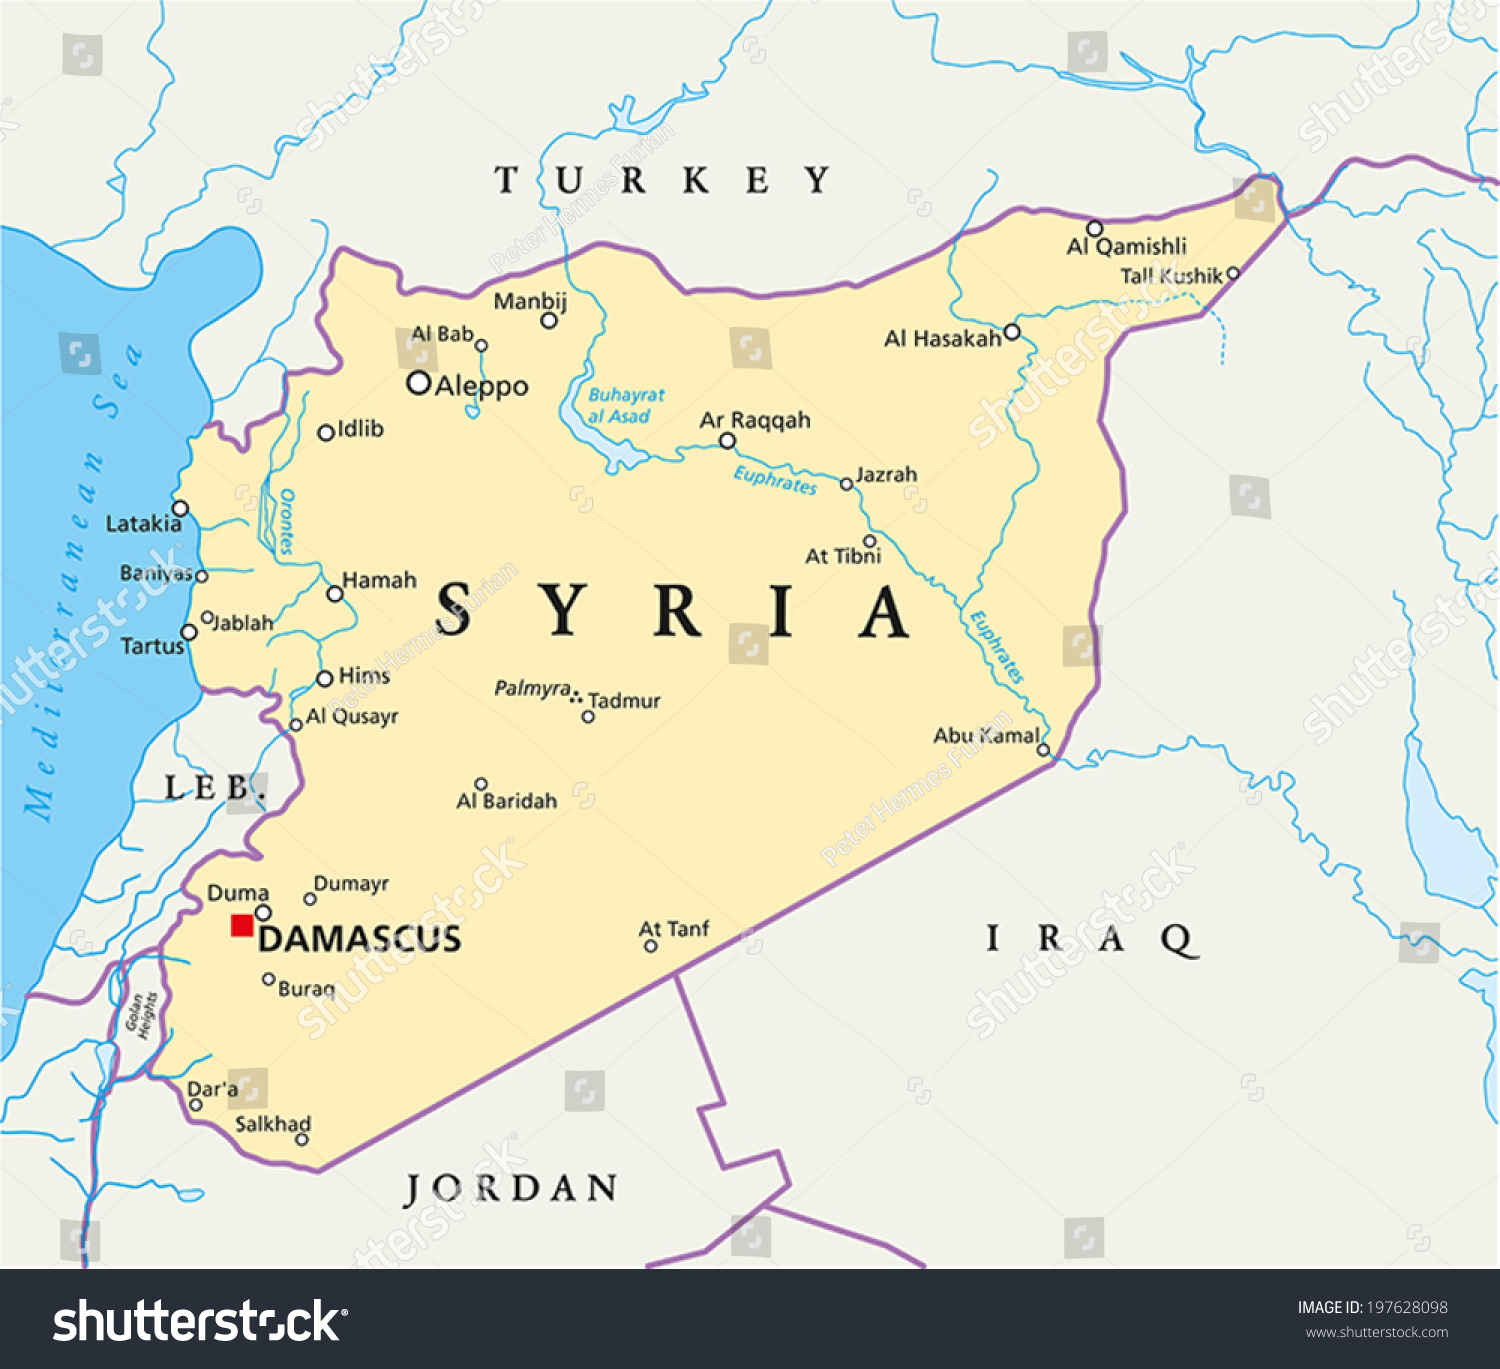 Syria political map capital damascus national stock vector 197628098 syria political map with capital damascus national borders most important cities rivers and gumiabroncs Gallery